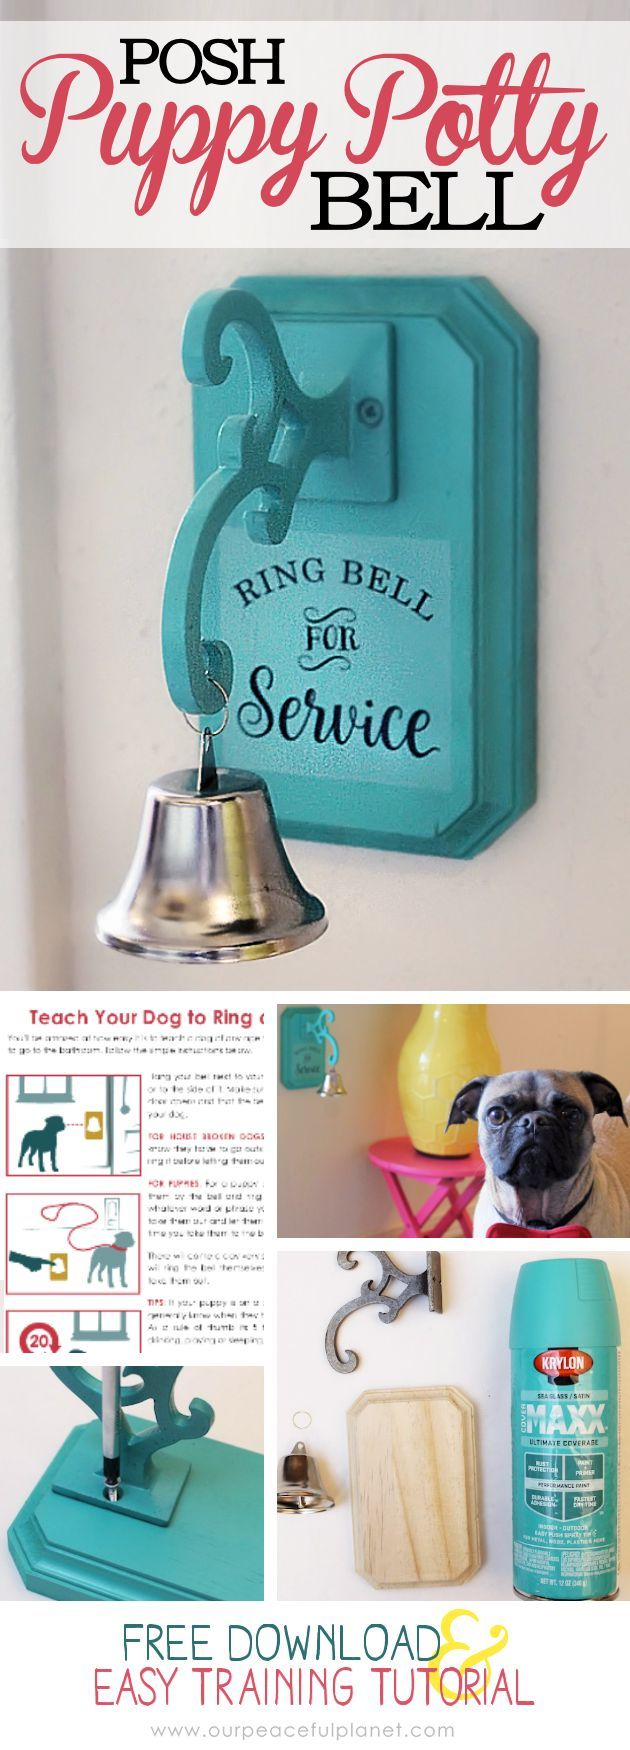 How To Potty Train A Dog To Use A Bell How To Make One Tutorials Dog And Ring